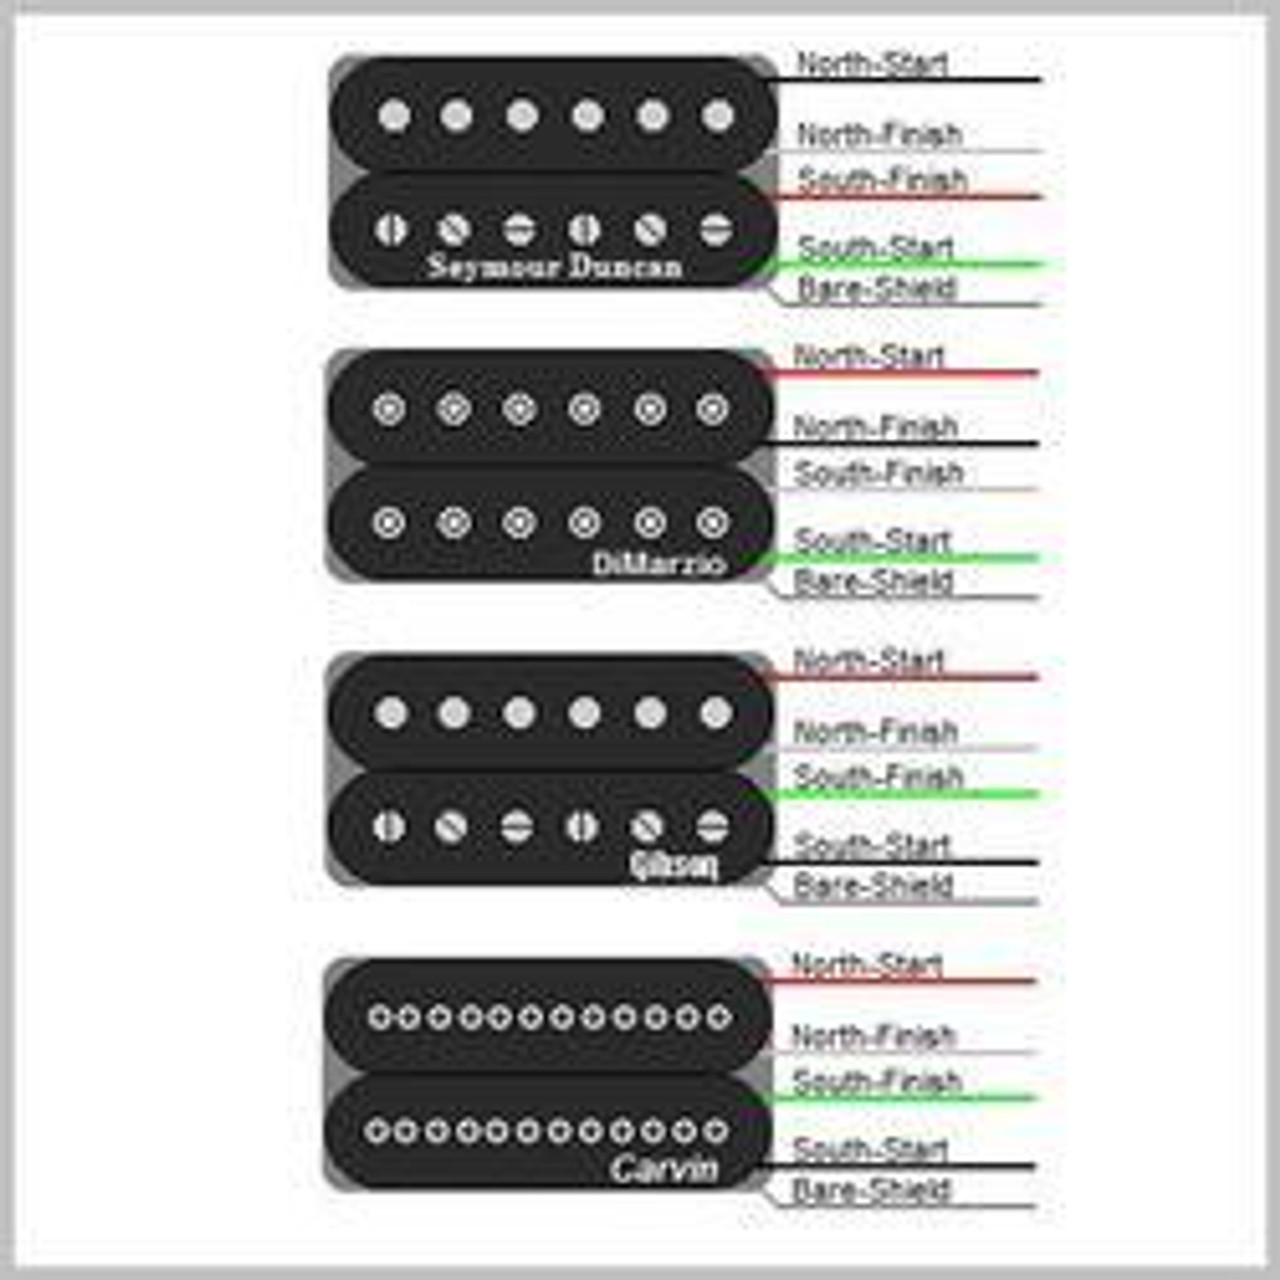 Guitar Humbucker Wire Color Codes | Guitar Wirirng Diagrams on